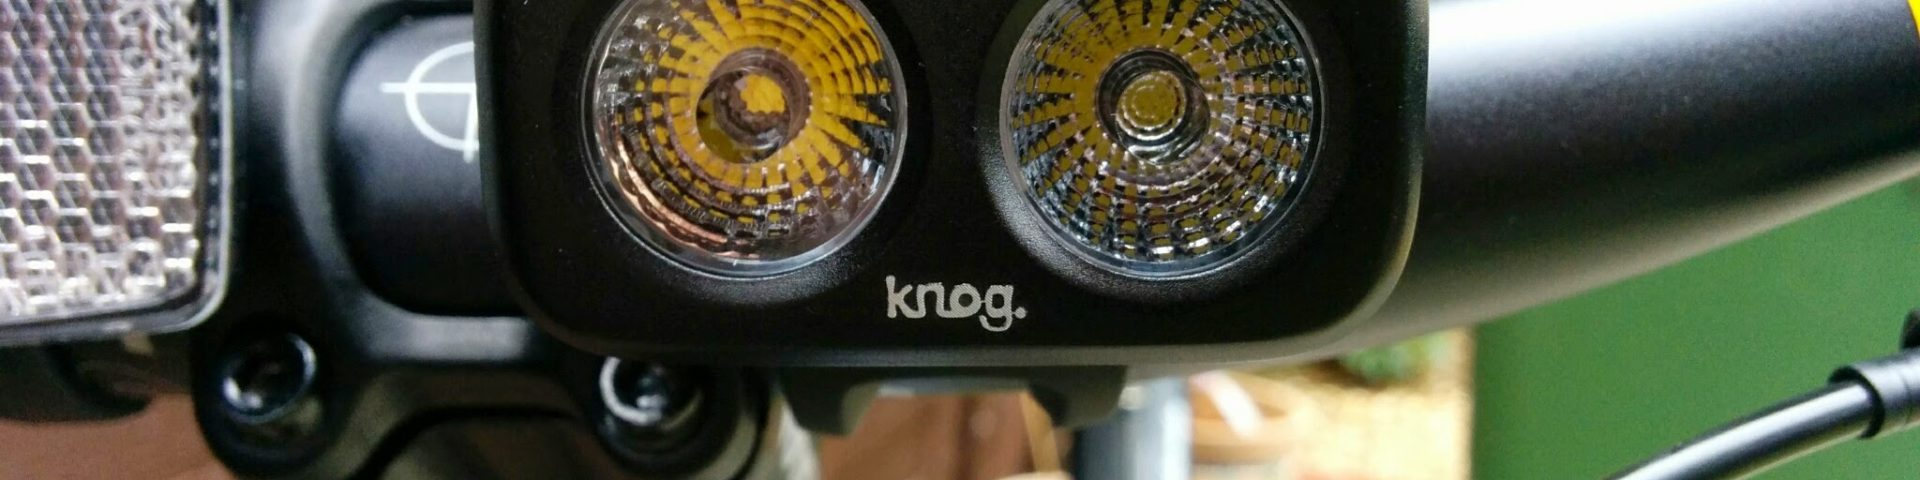 Knog Blinder Road 2 LED Front Light